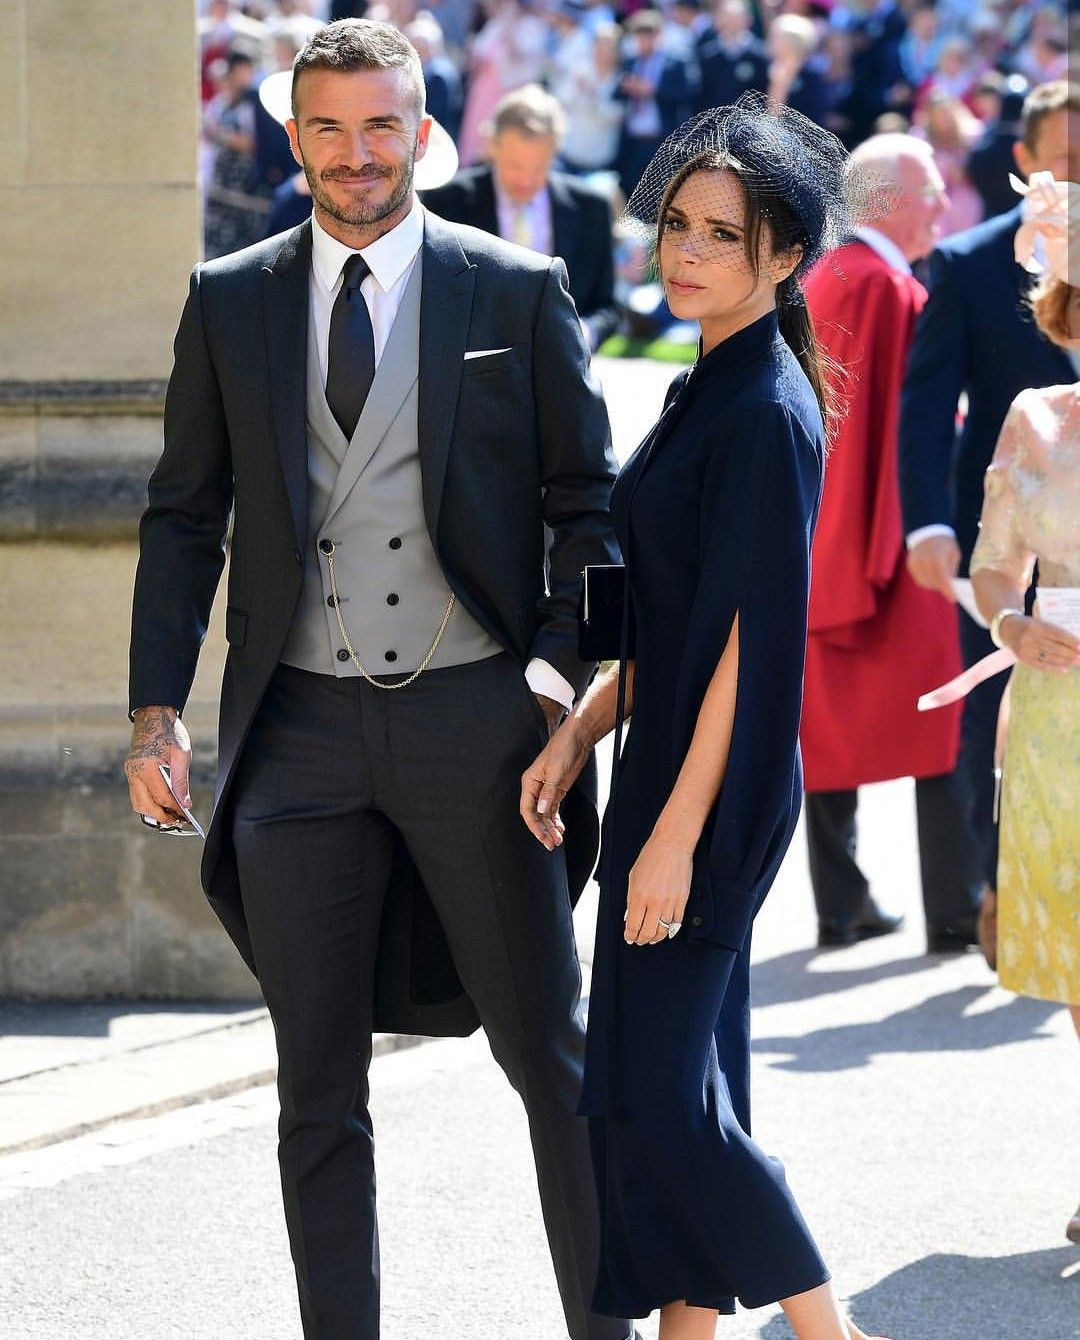 d11b7091a David Beckham in Dior Homme & Victoria Beckham in her own creation at the  royal wedding of Prince Harry & Ms. Meghan Markle.